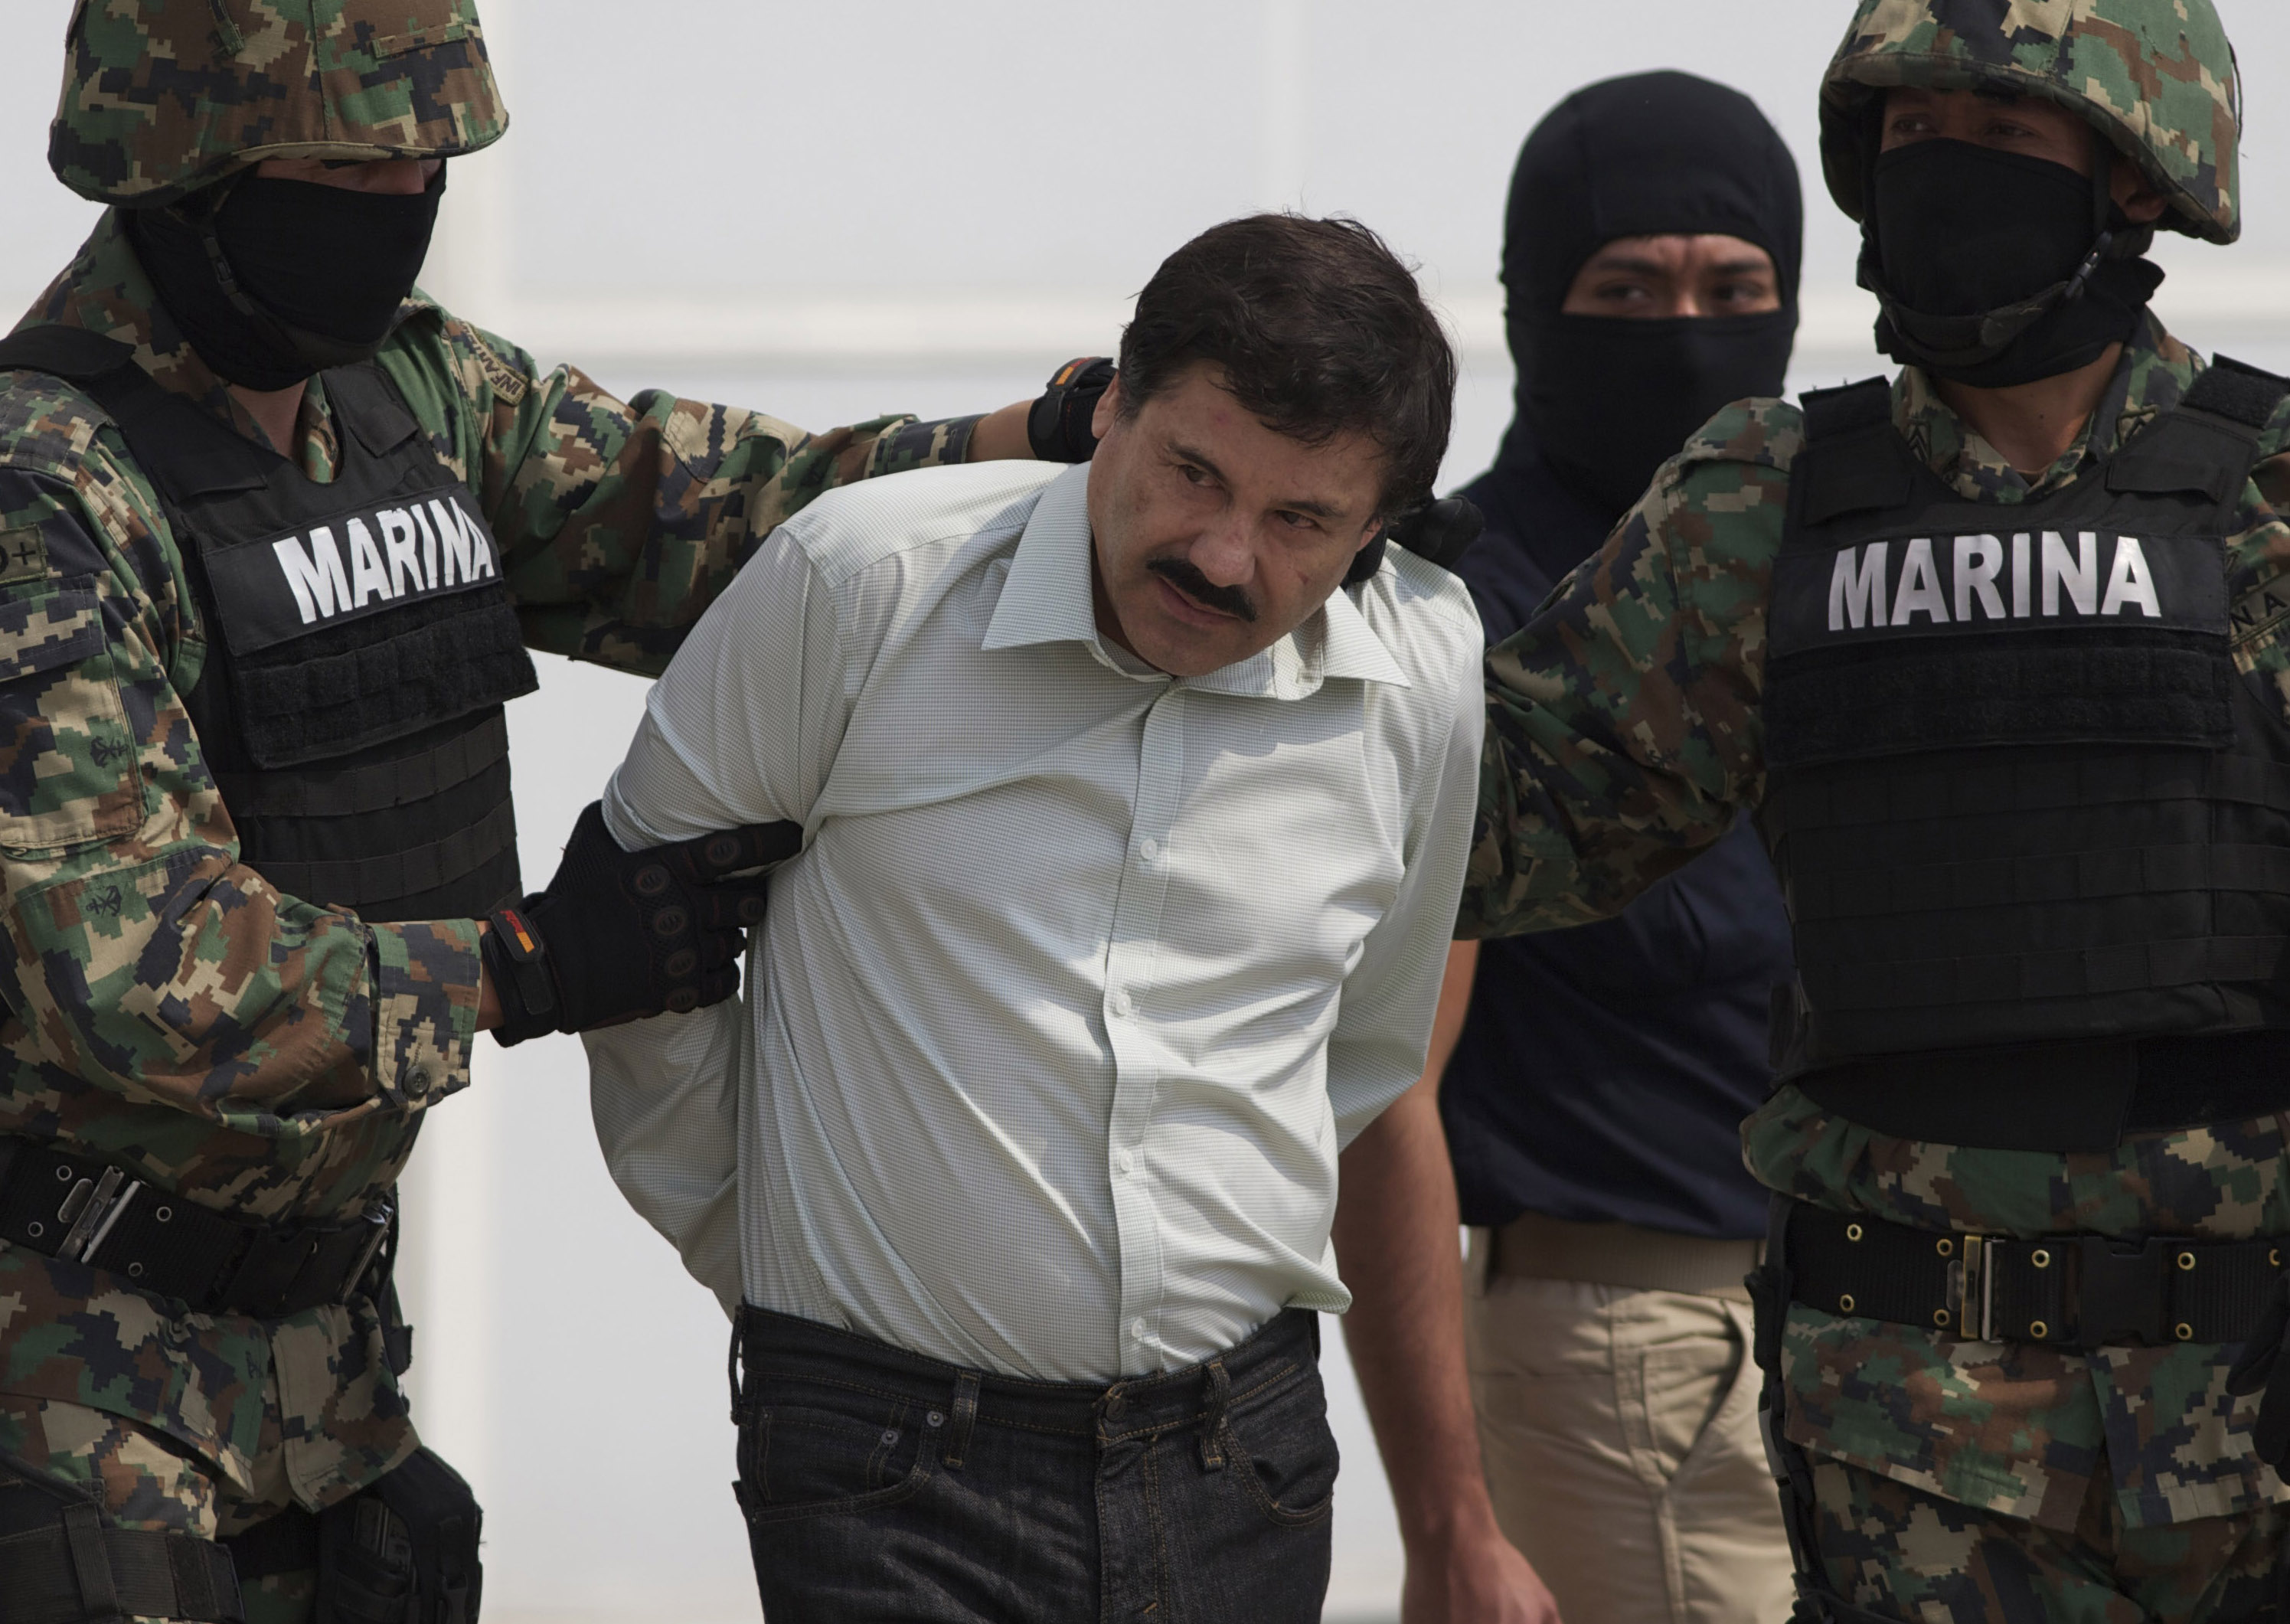 Sinaloa cartel chief Joaquin